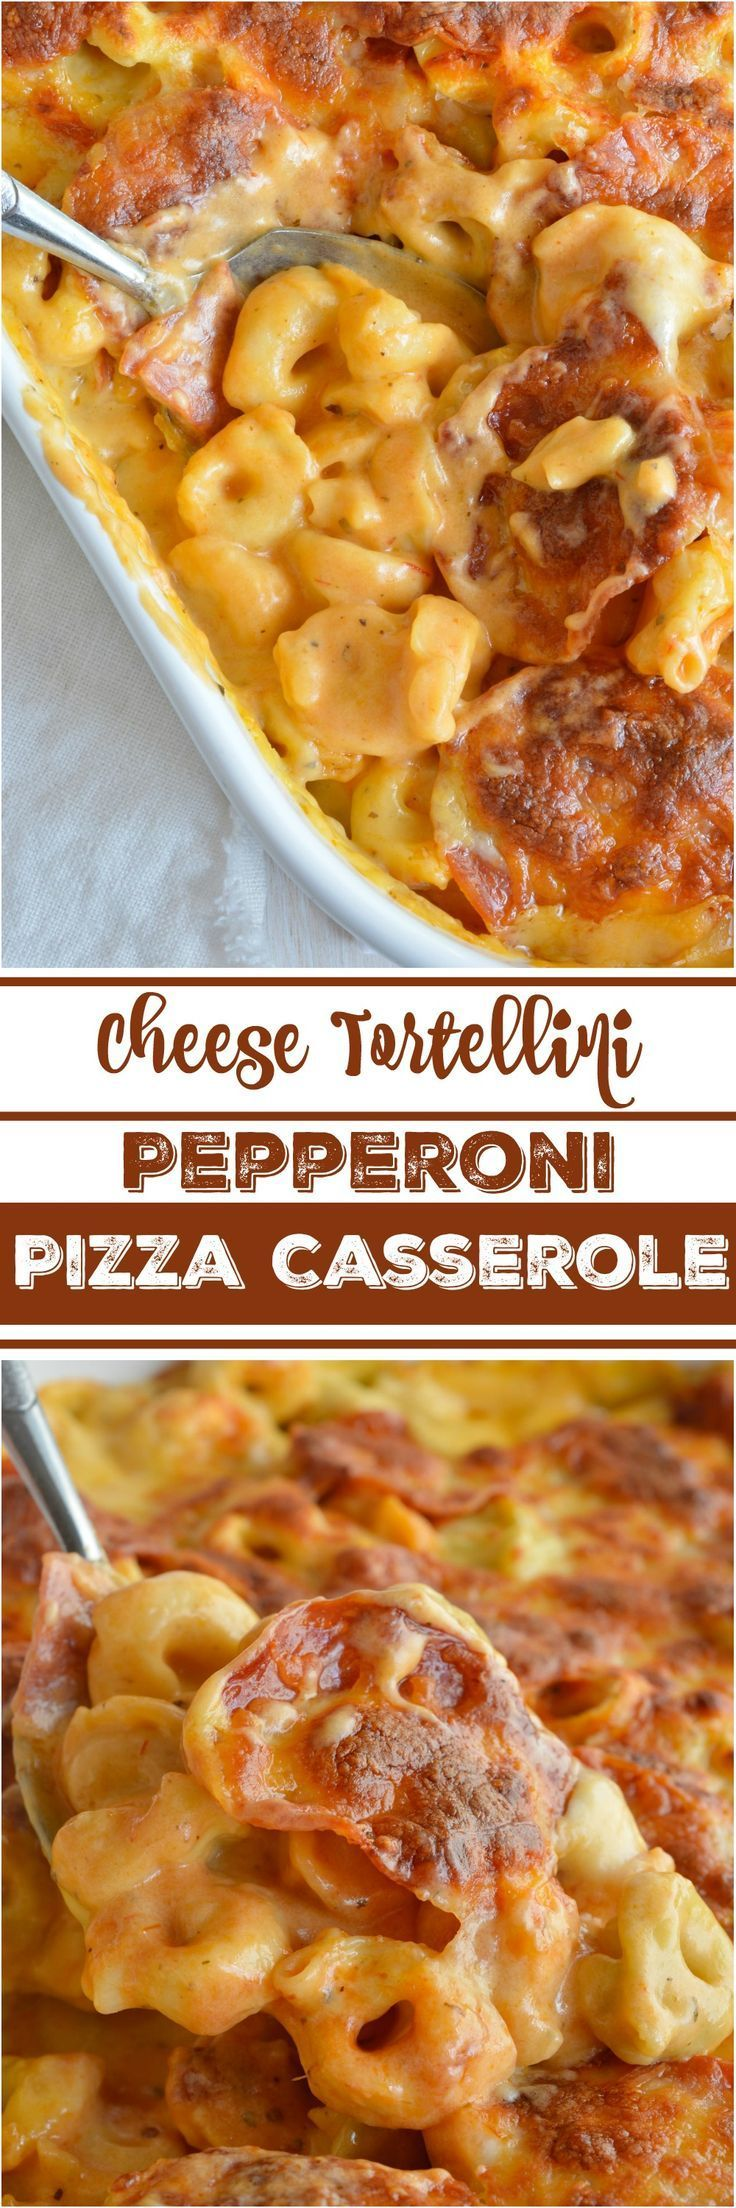 If you love macaroni & cheese and pepperoni pizza you will flip for this Cheese Tortellini Pepperoni Pizza Casserole Recipe! This tortellini mac & cheese is combined with the flavors of pepperoni pizza then baked to bubbly, cheesy perfection. This dinner is sure to become your family's new favorite comfort food.